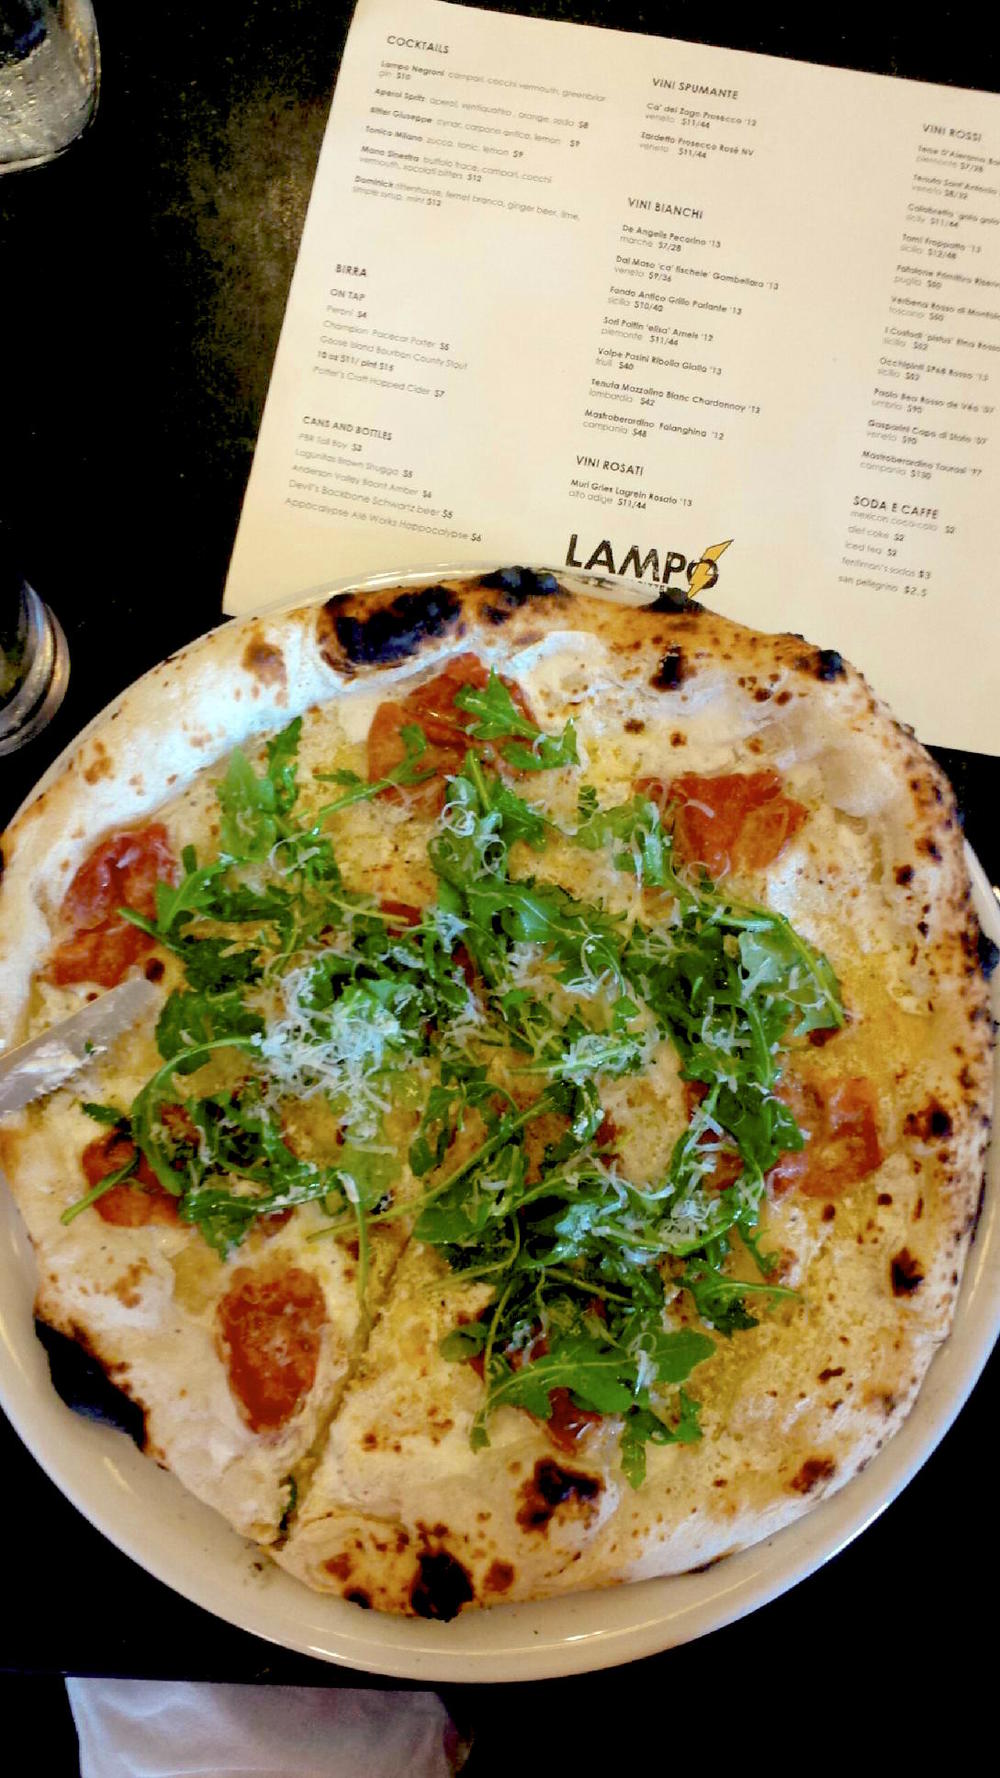 Lampo Pizza, Charlottesville Food Tour